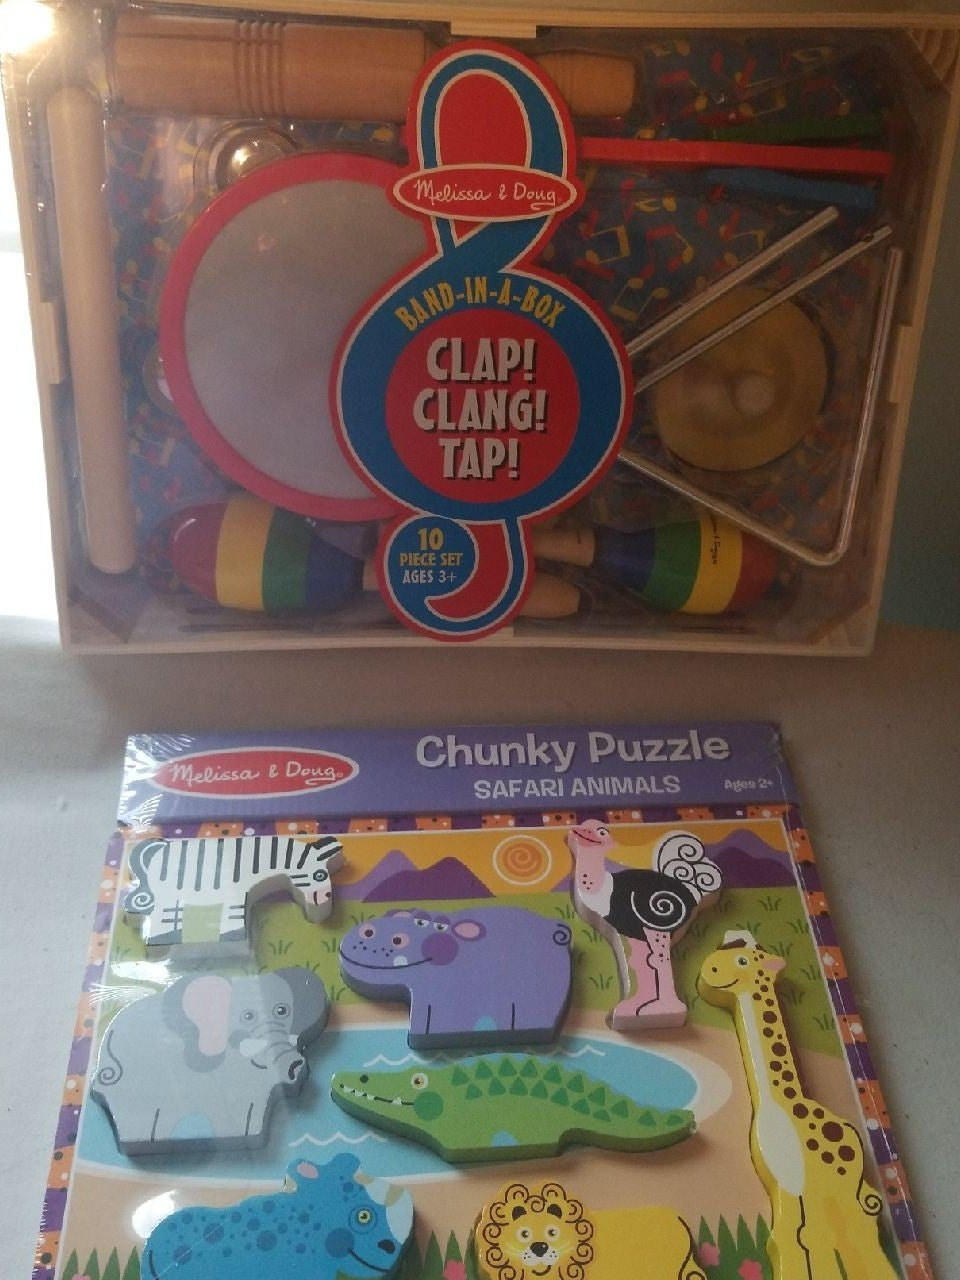 Melissa and Doug Puzzle & Band in a Box